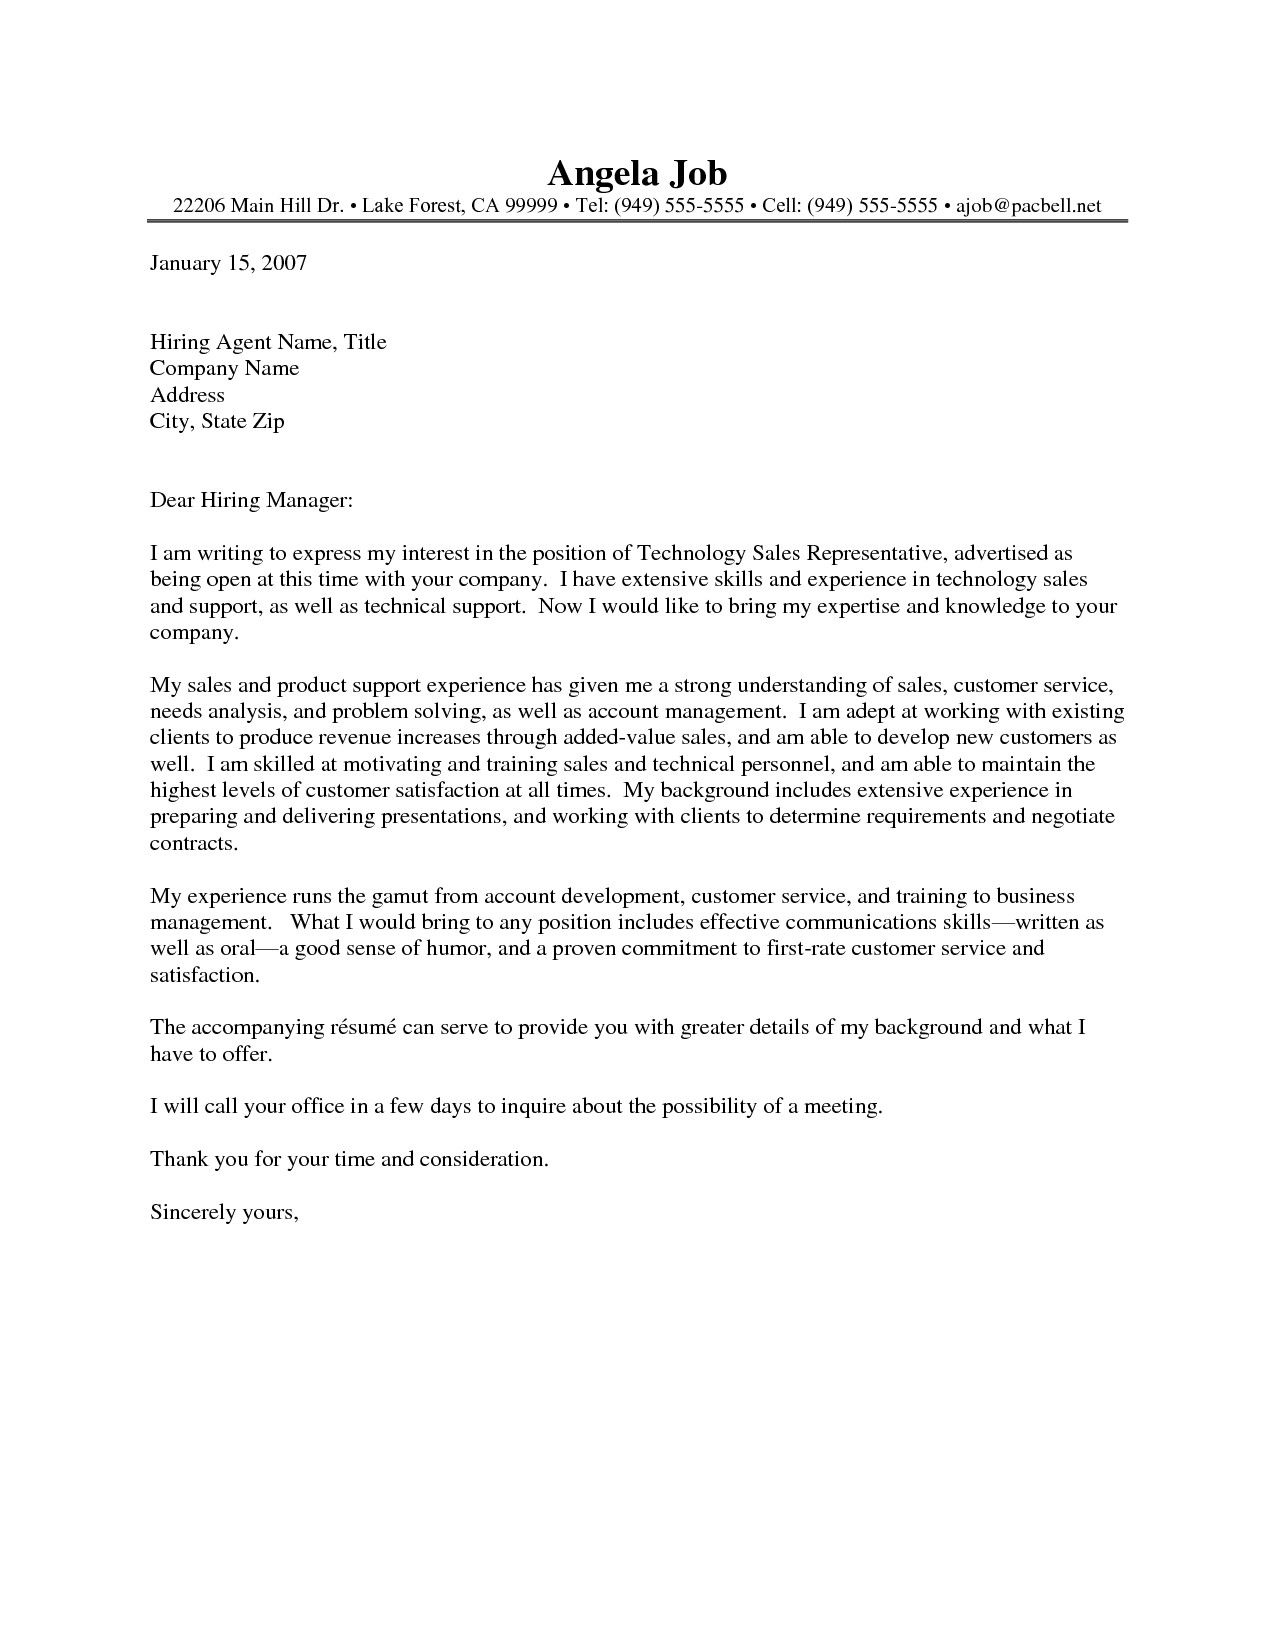 25+ Sales Cover Letter . Sales Cover Letter Valid Sales Sample Cover ...